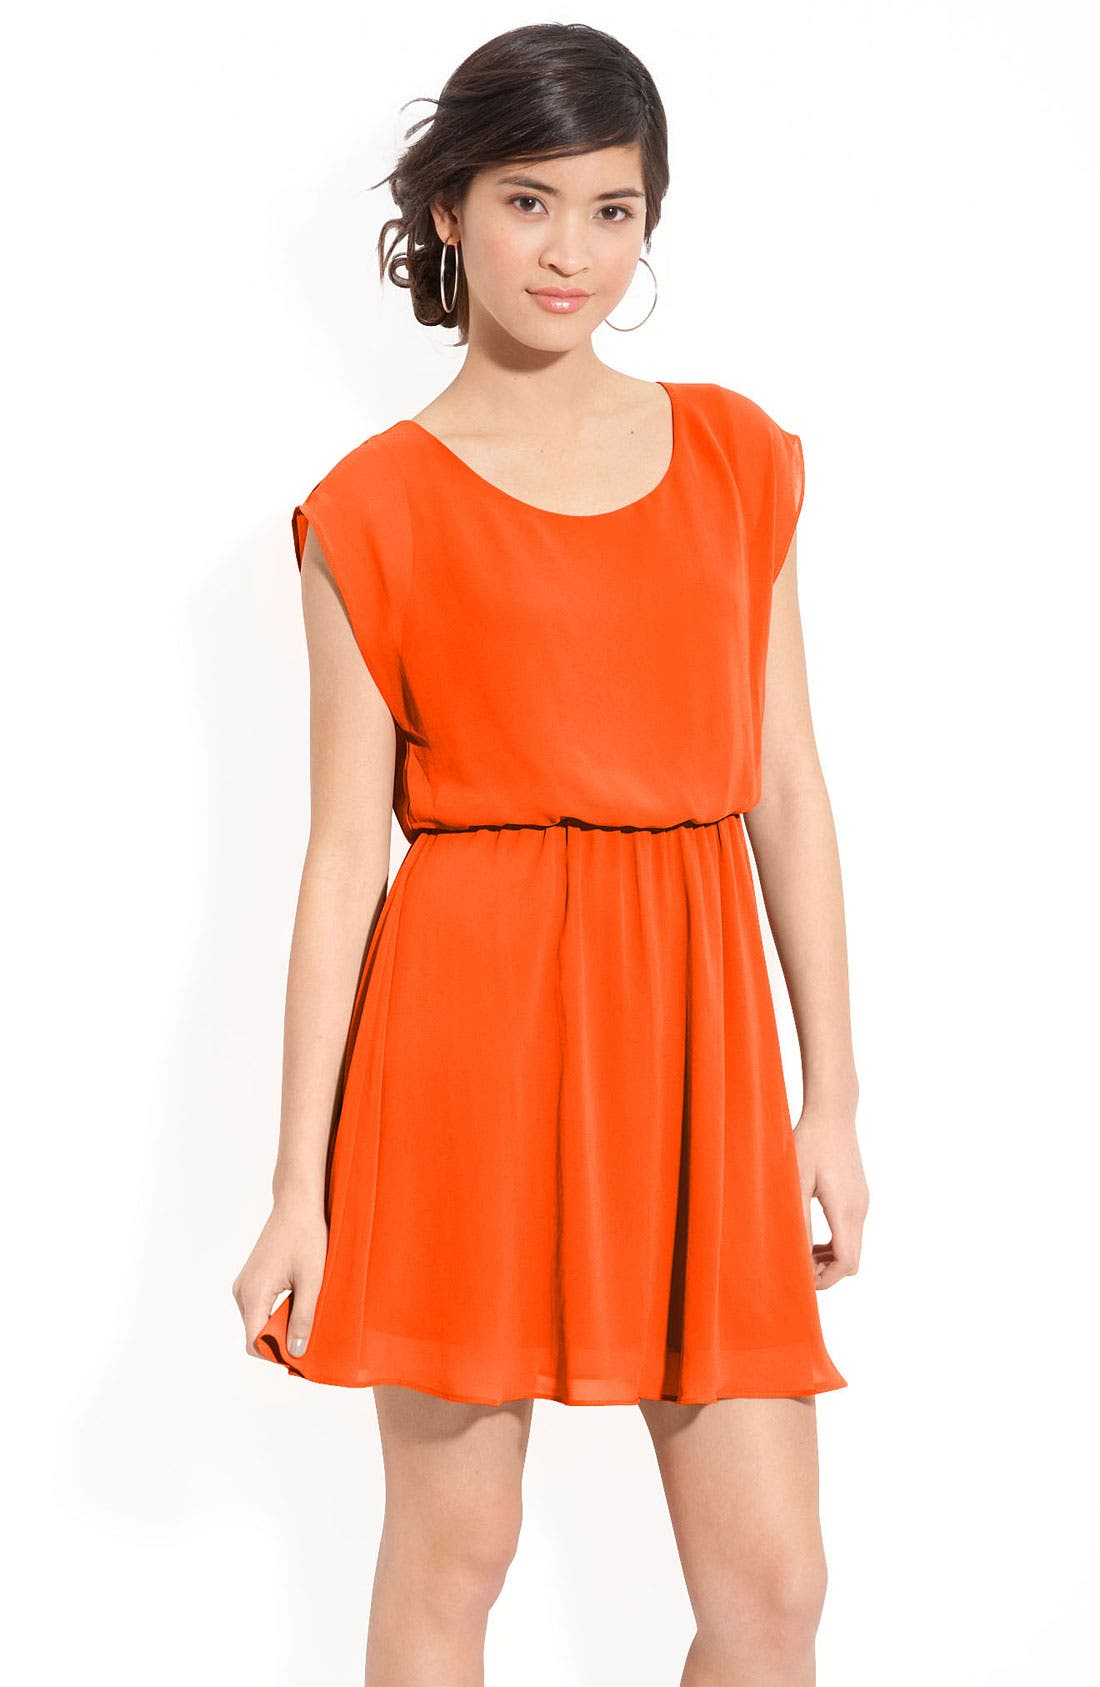 Alternate Image 1 Selected - Lush 'Harper' Chiffon Dress (Juniors)